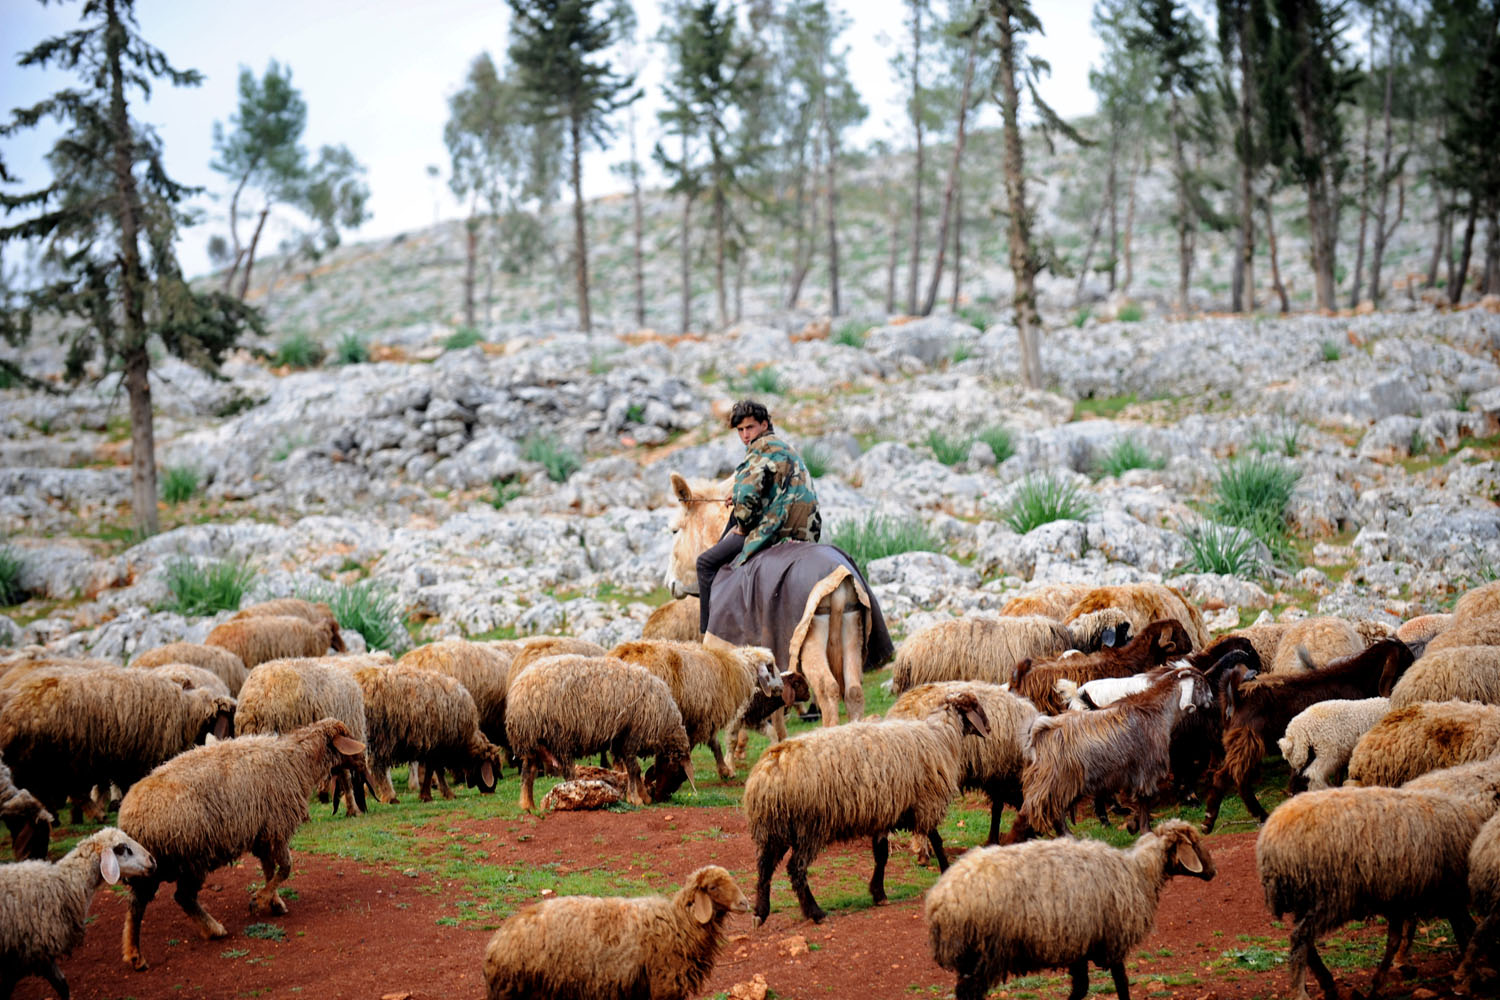 A Syrian shepherd cares for his flock near the ruins of the ancient Roman city of of Serjilla in the northwestern province of Idlib, Syria, March 19, 2013.